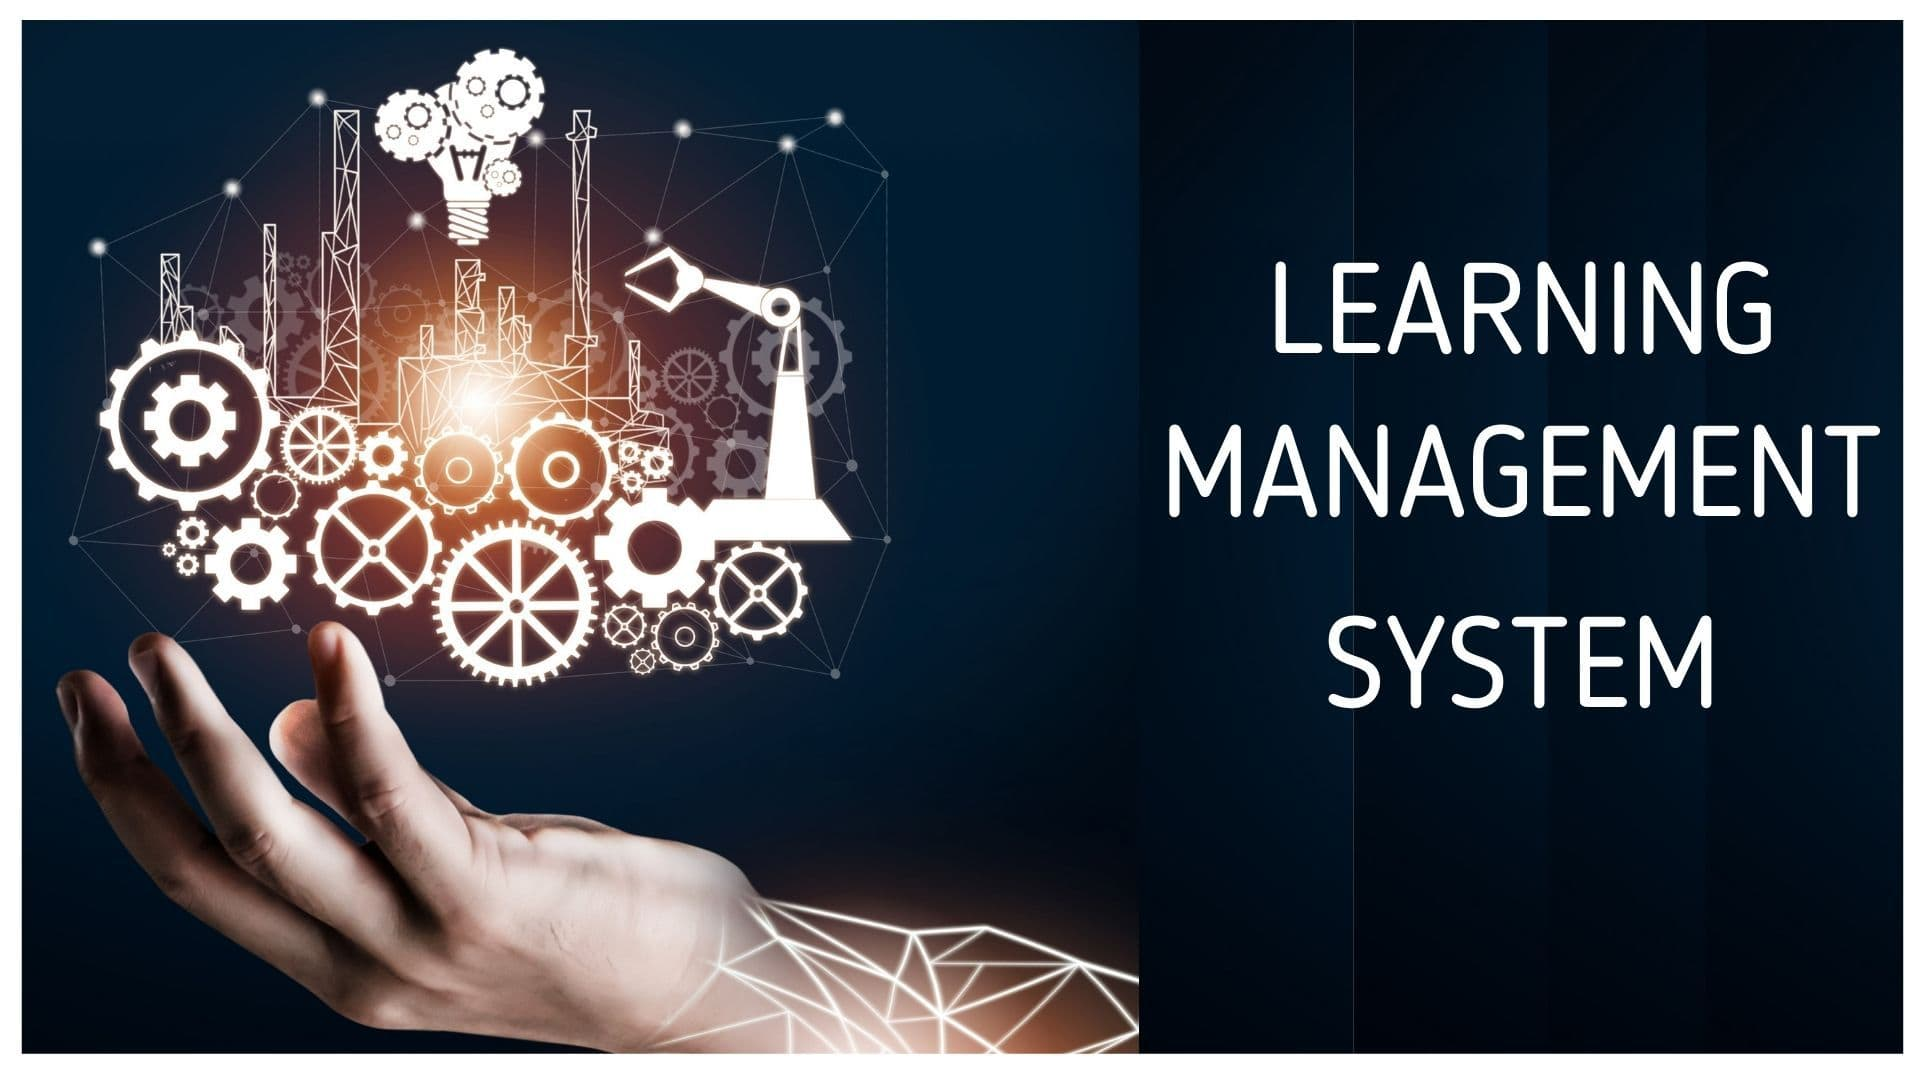 The inception of Learning Management Systems